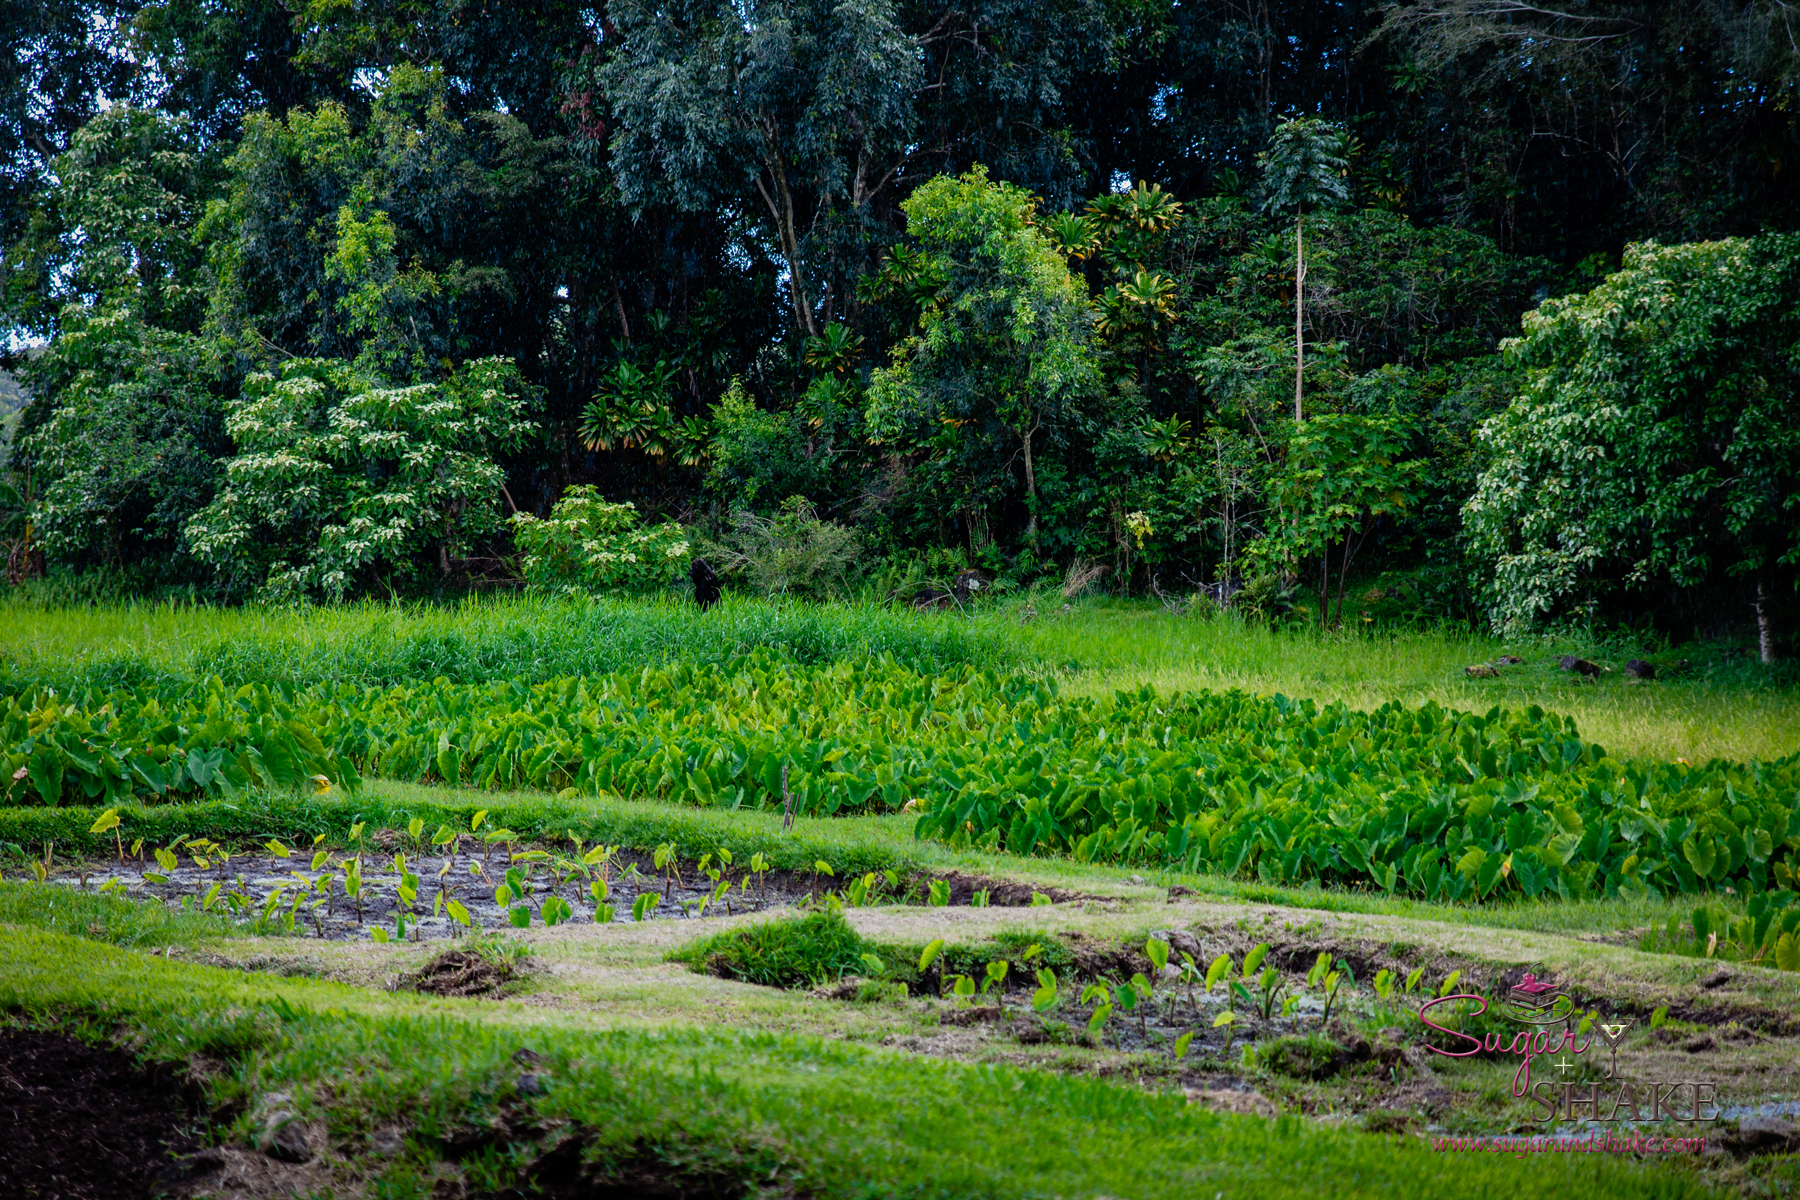 Kapahu Living Farm in Kīpahulu, Maui. © 2015 Sugar + Shake